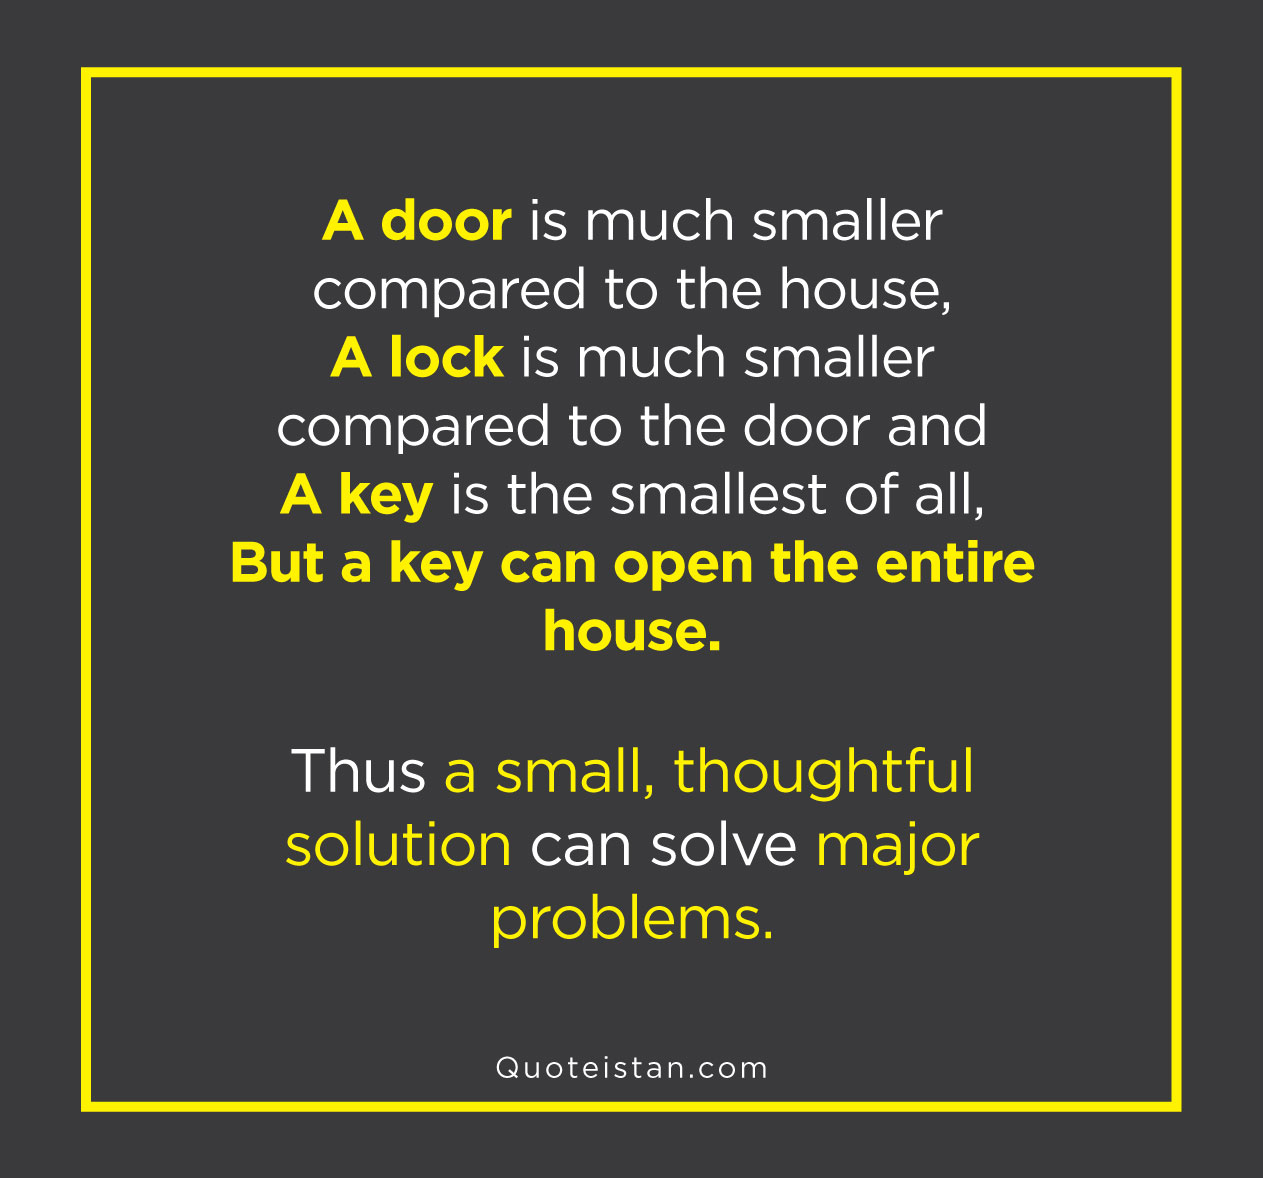 A door is much smaller compared to the house, a lock is much smaller compared to the door and a key is the smallest of all, but a key can open the entire house. Thus a small, thoughtful solution can solve major problems.